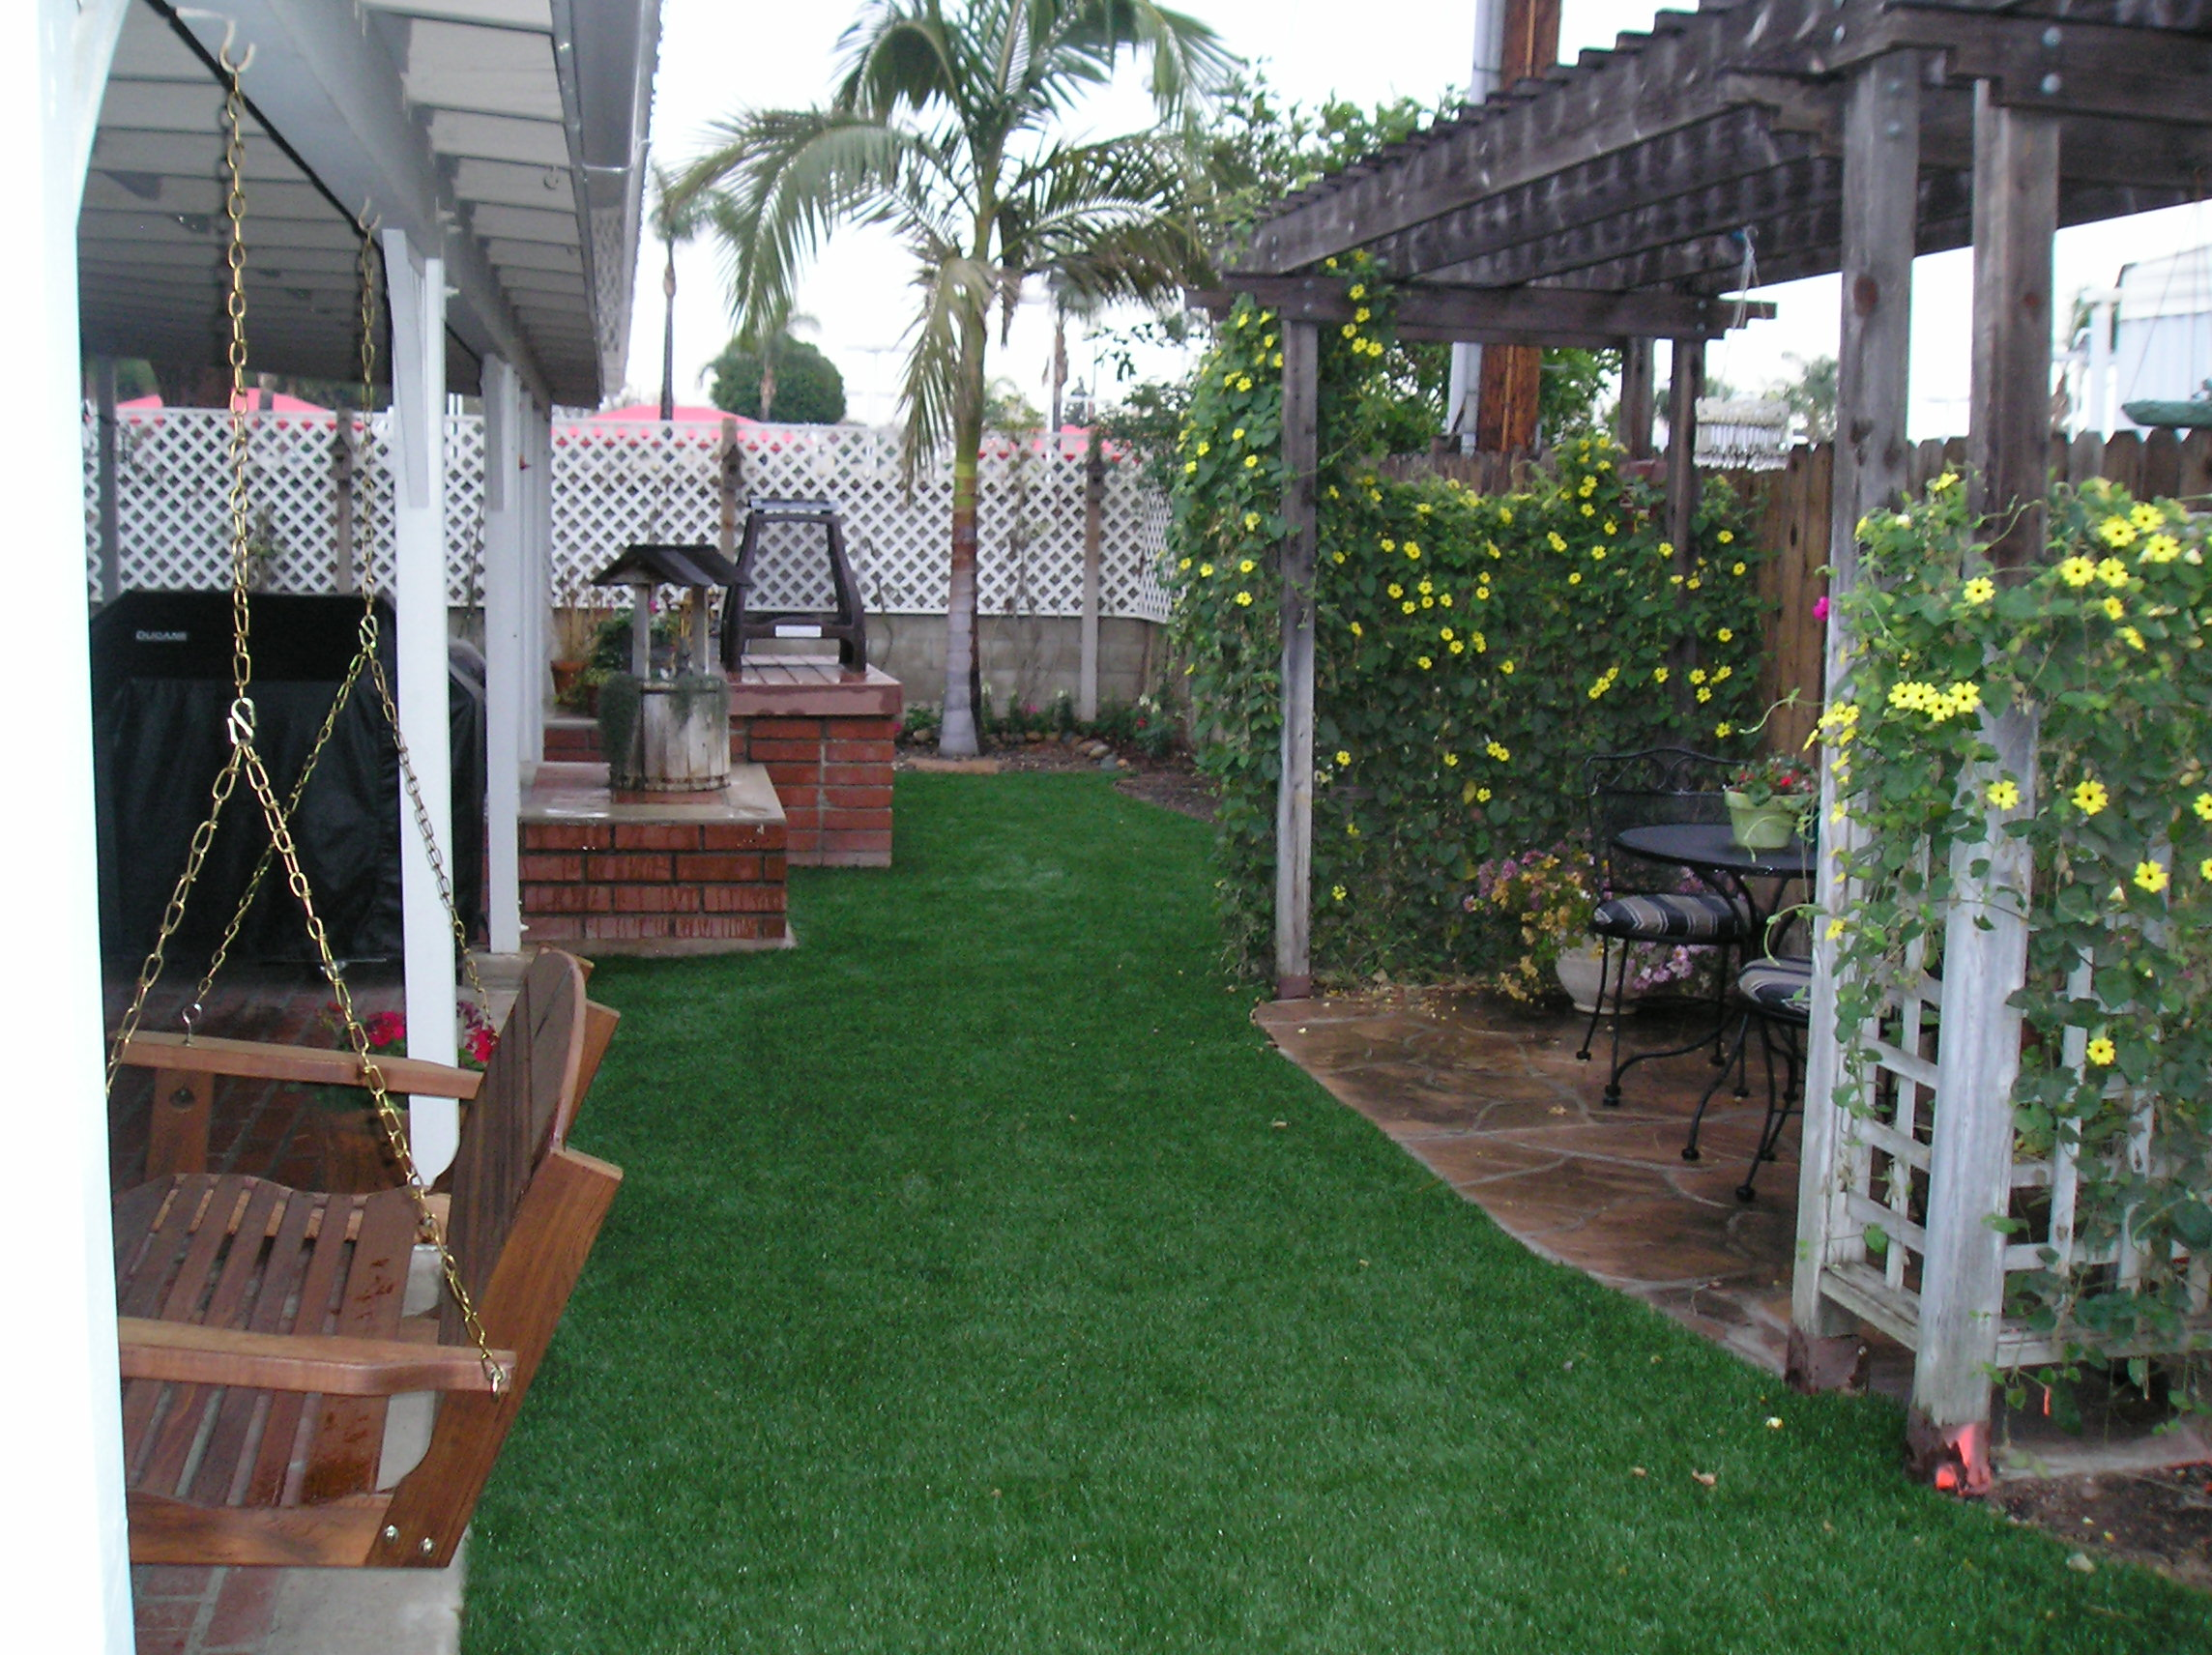 Super Natural 60 artificial grass installation,artificial turf installation,turf installation,synthetic grass installation,fake grass installation,artificial grass installation,artificial turf installation,turf installation,synthetic grass installation,fake grass installation